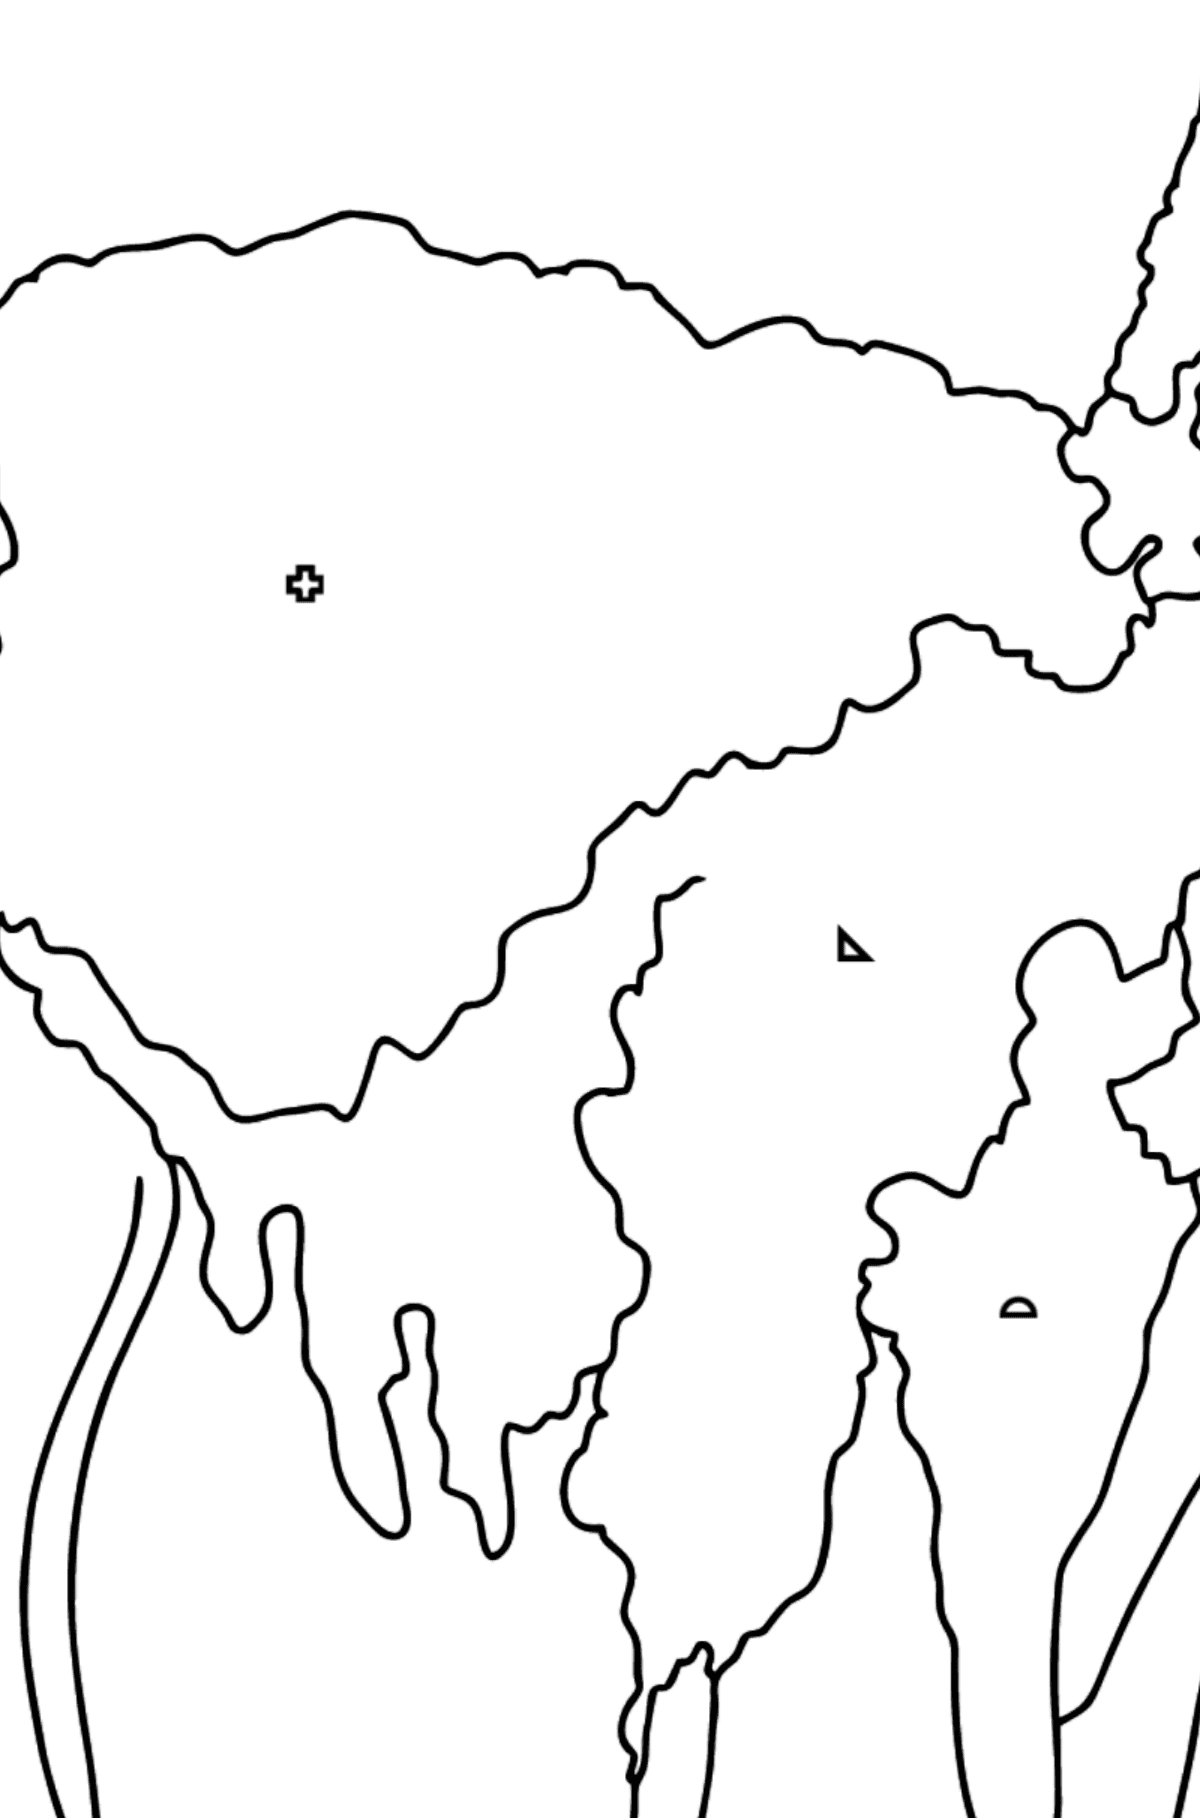 Coloring Page - A Lama is Inspecting the Area - Coloring by Geometric Shapes for Kids